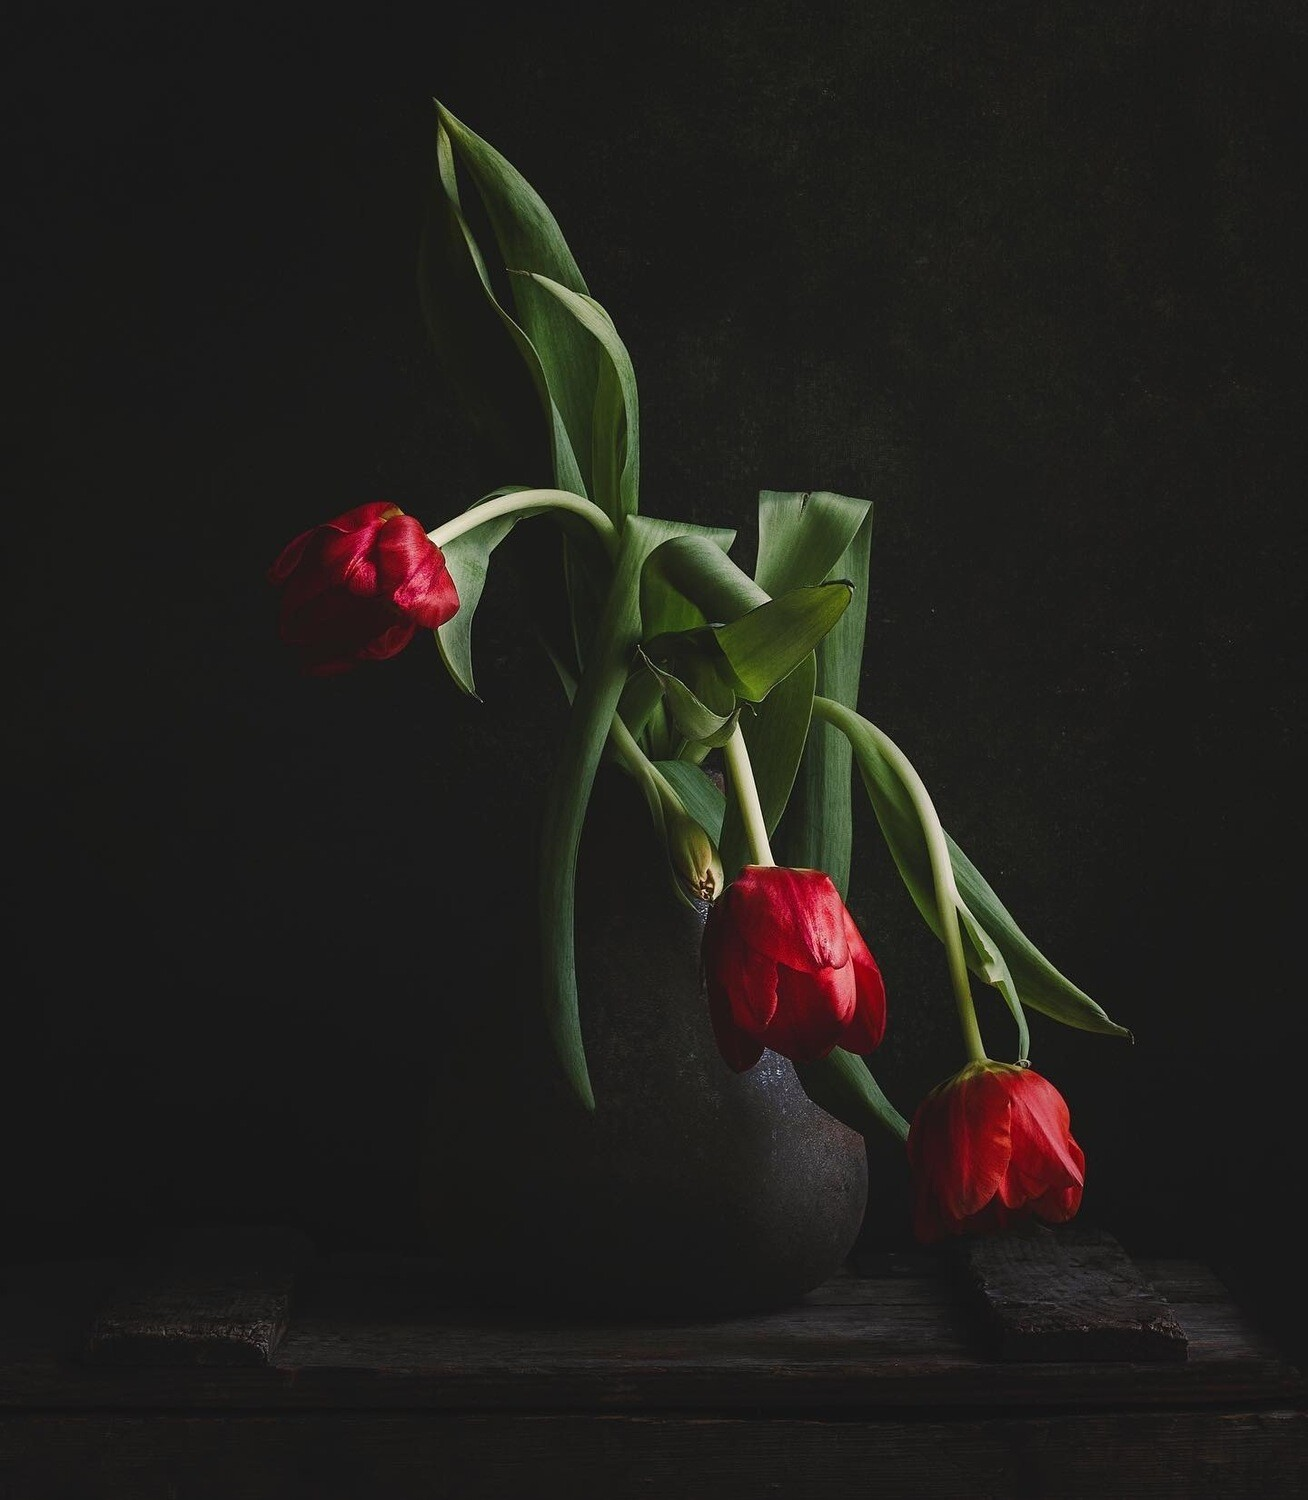 The Bowing Tulip